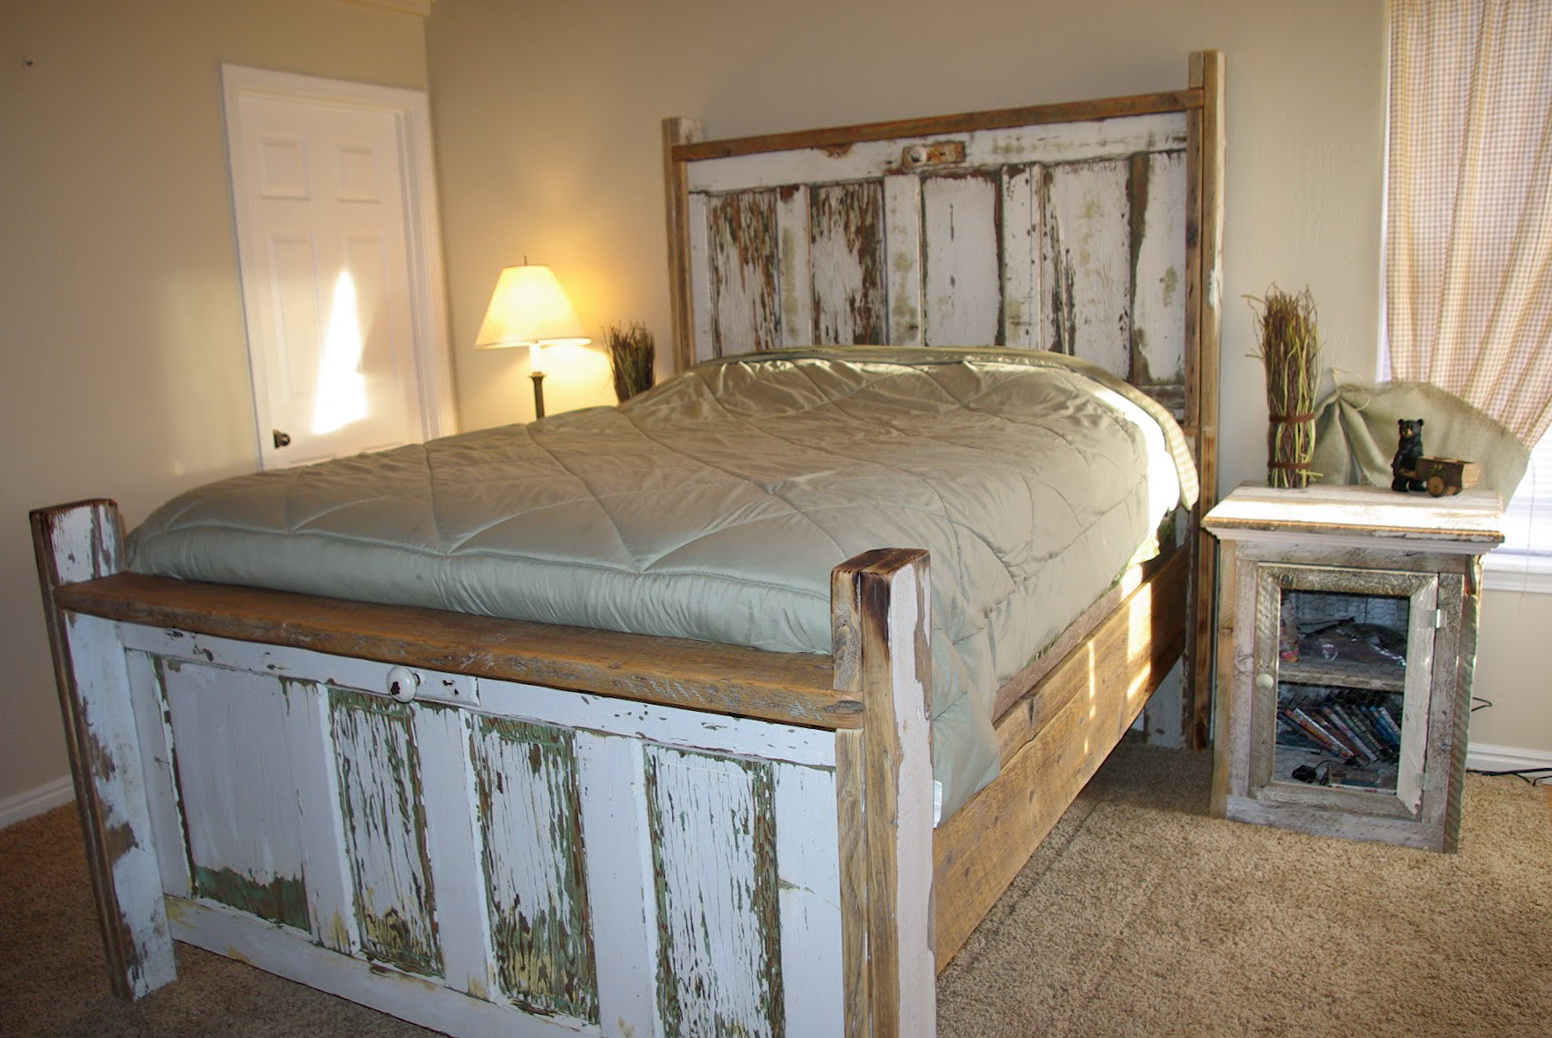 Genial Making A Headboard Out Of An Old Door